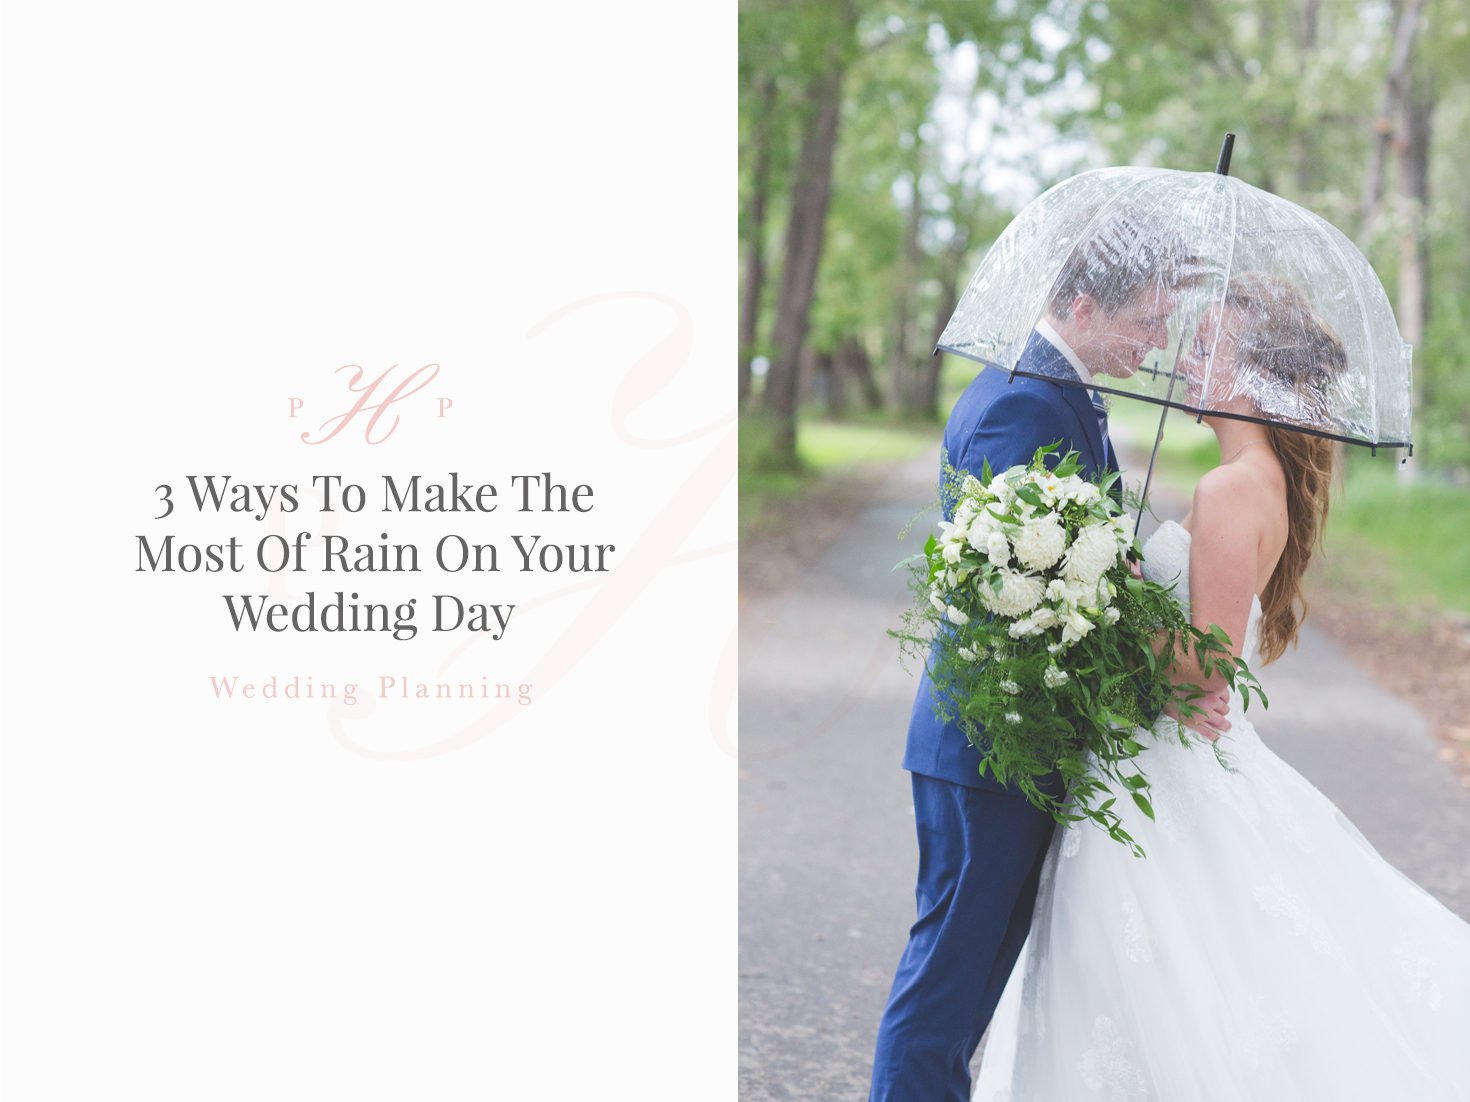 Rain On Your Wedding Day.3 Ways To Make The Most Of Rain On Your Wedding Day Parrish House